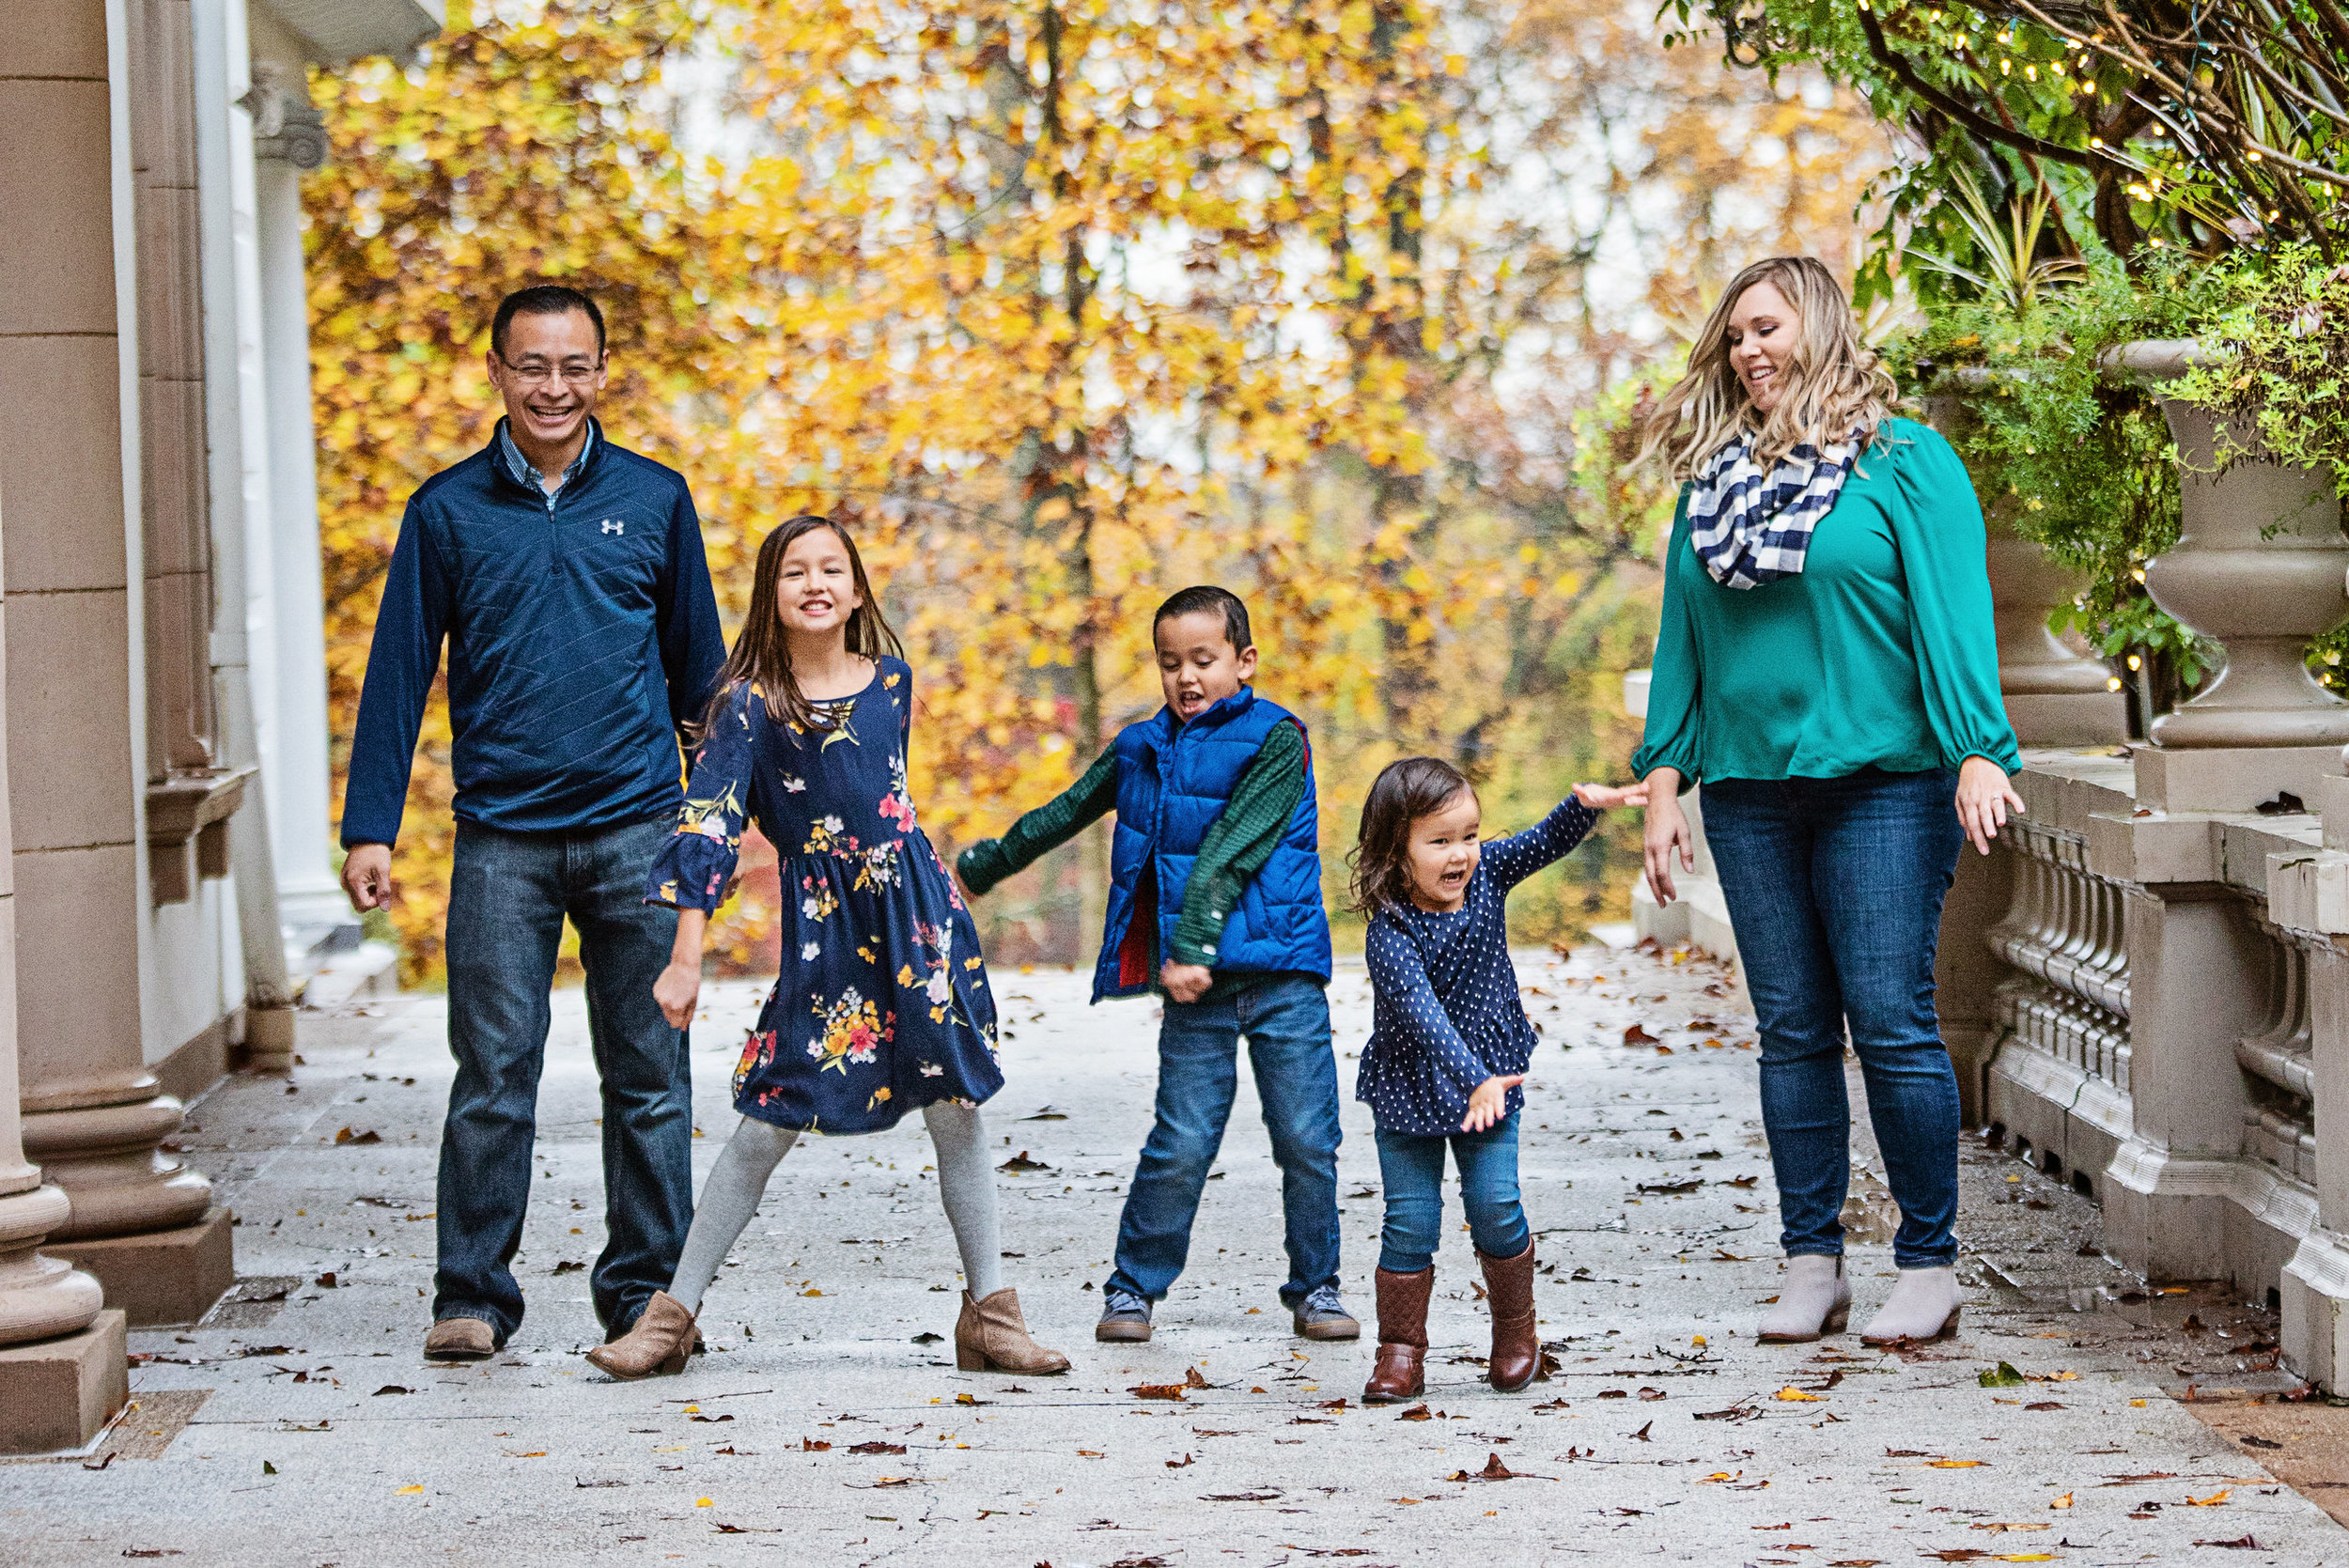 MarylandFamilyPhotography-LienFamily2018-18.jpg